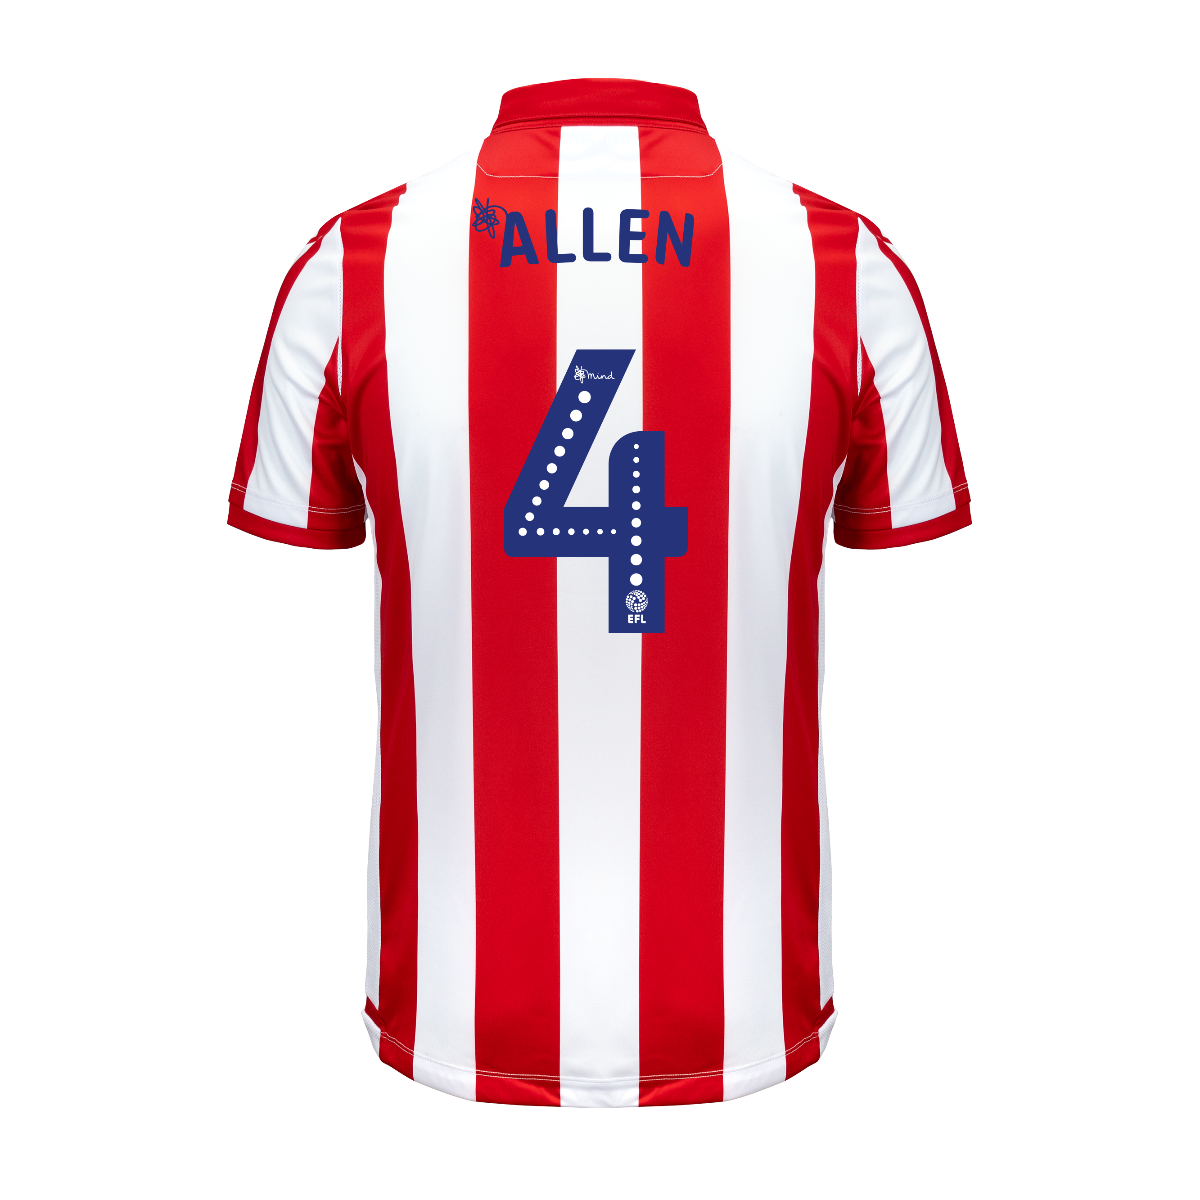 2019/20 Adult Home SS Shirt - Allen